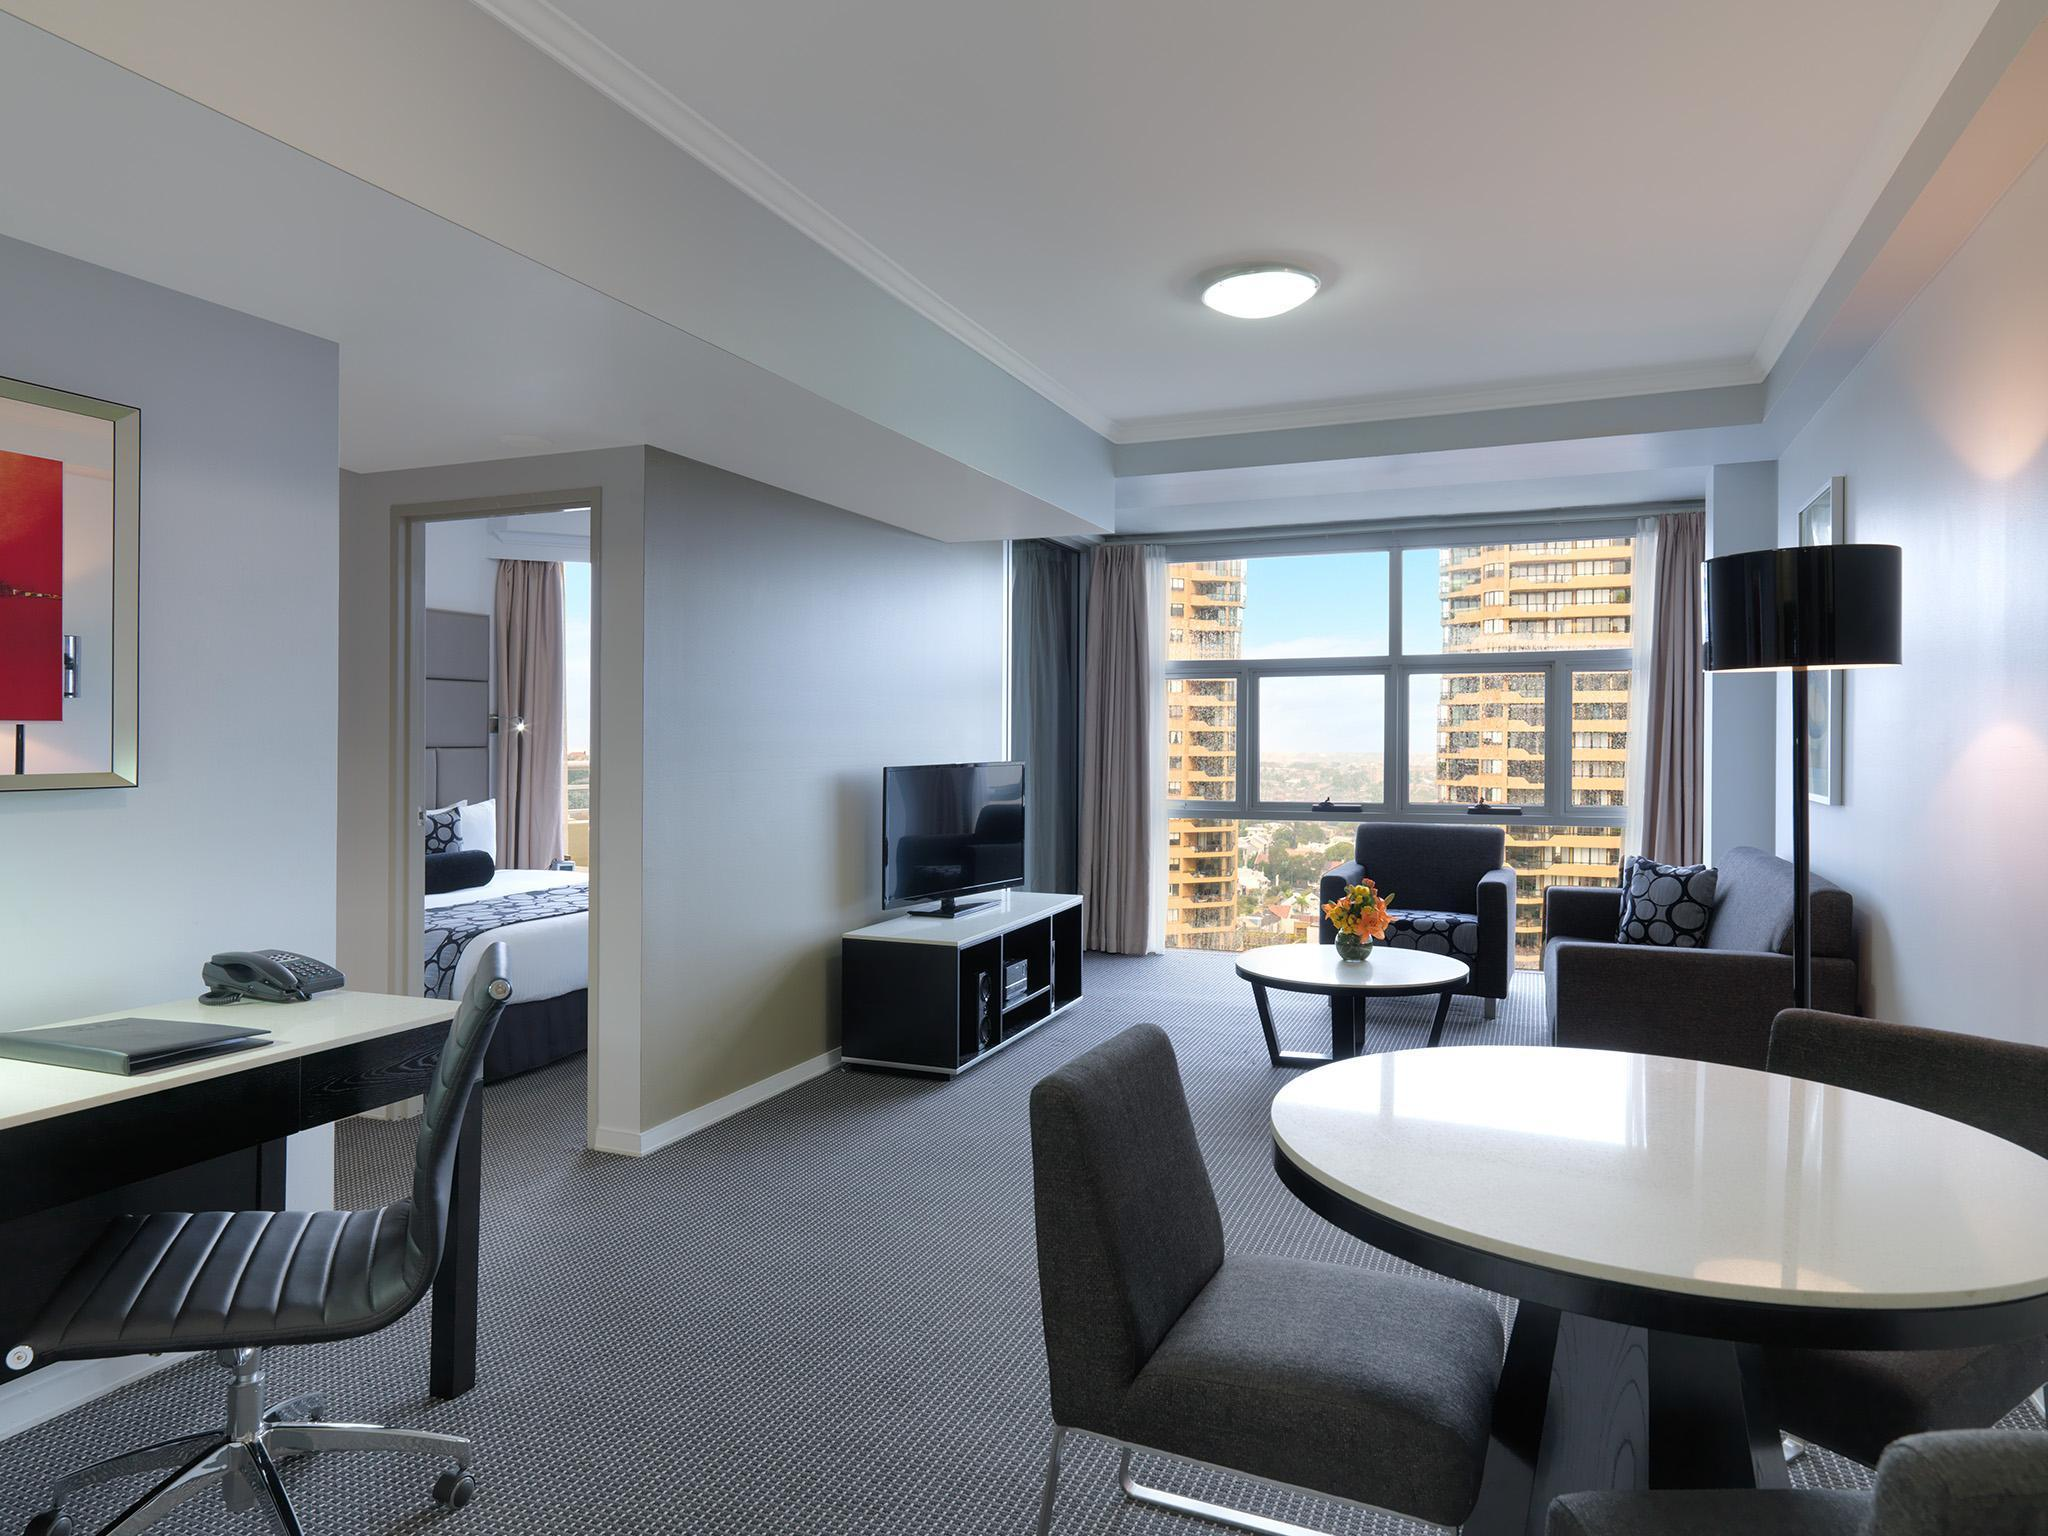 Cheap 2 Bedroom Apartment. Cheap Two Bedroom Apartments